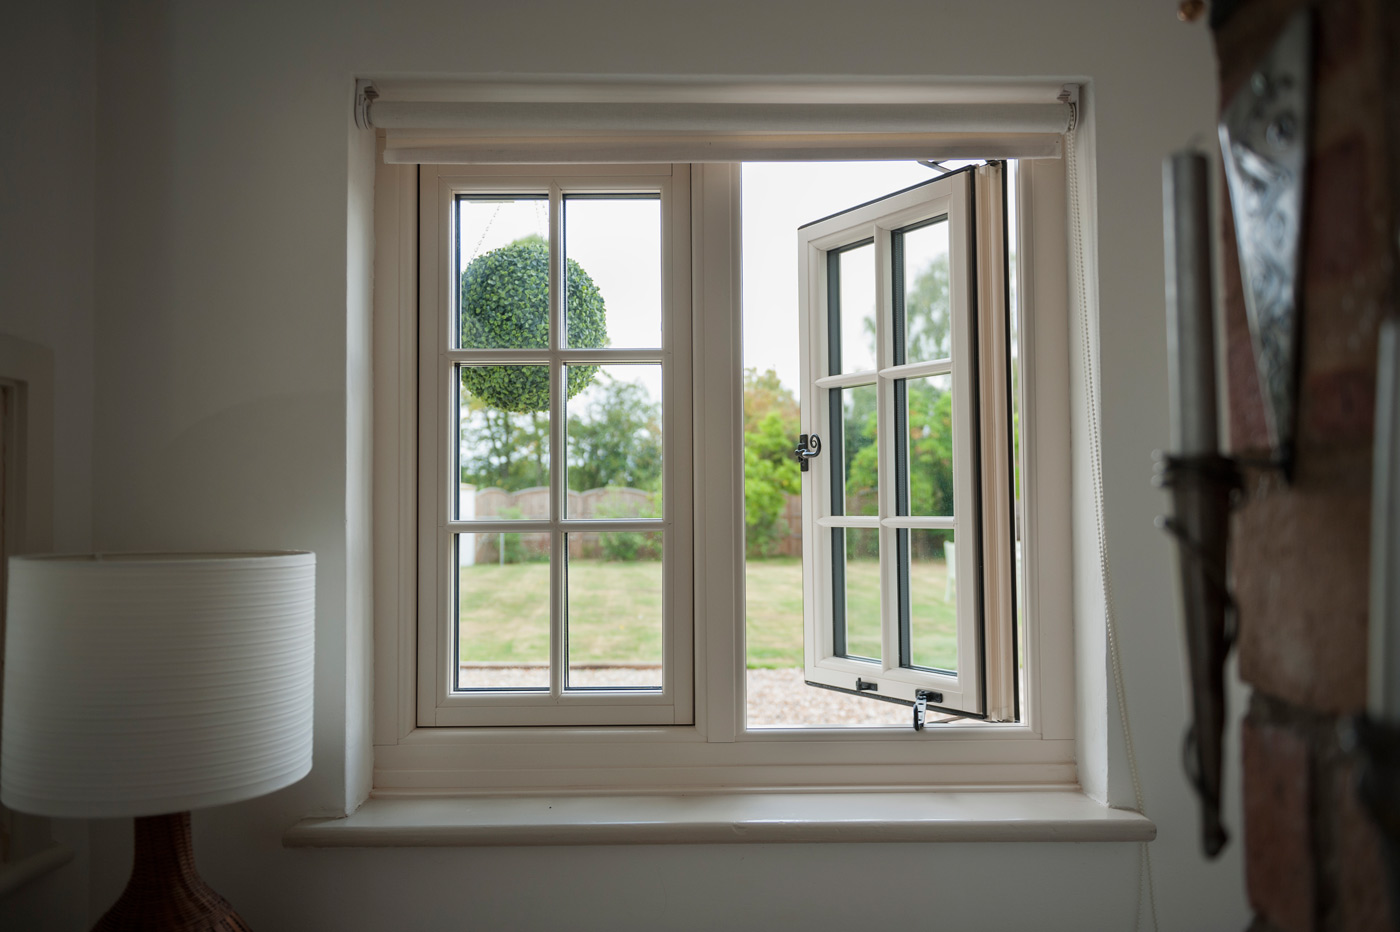 Your Price Windows Best Ways to Create a Timber Look for Windows Without the Upkeep - Best Ways to Create a Timber Look for Windows Without the Upkeep